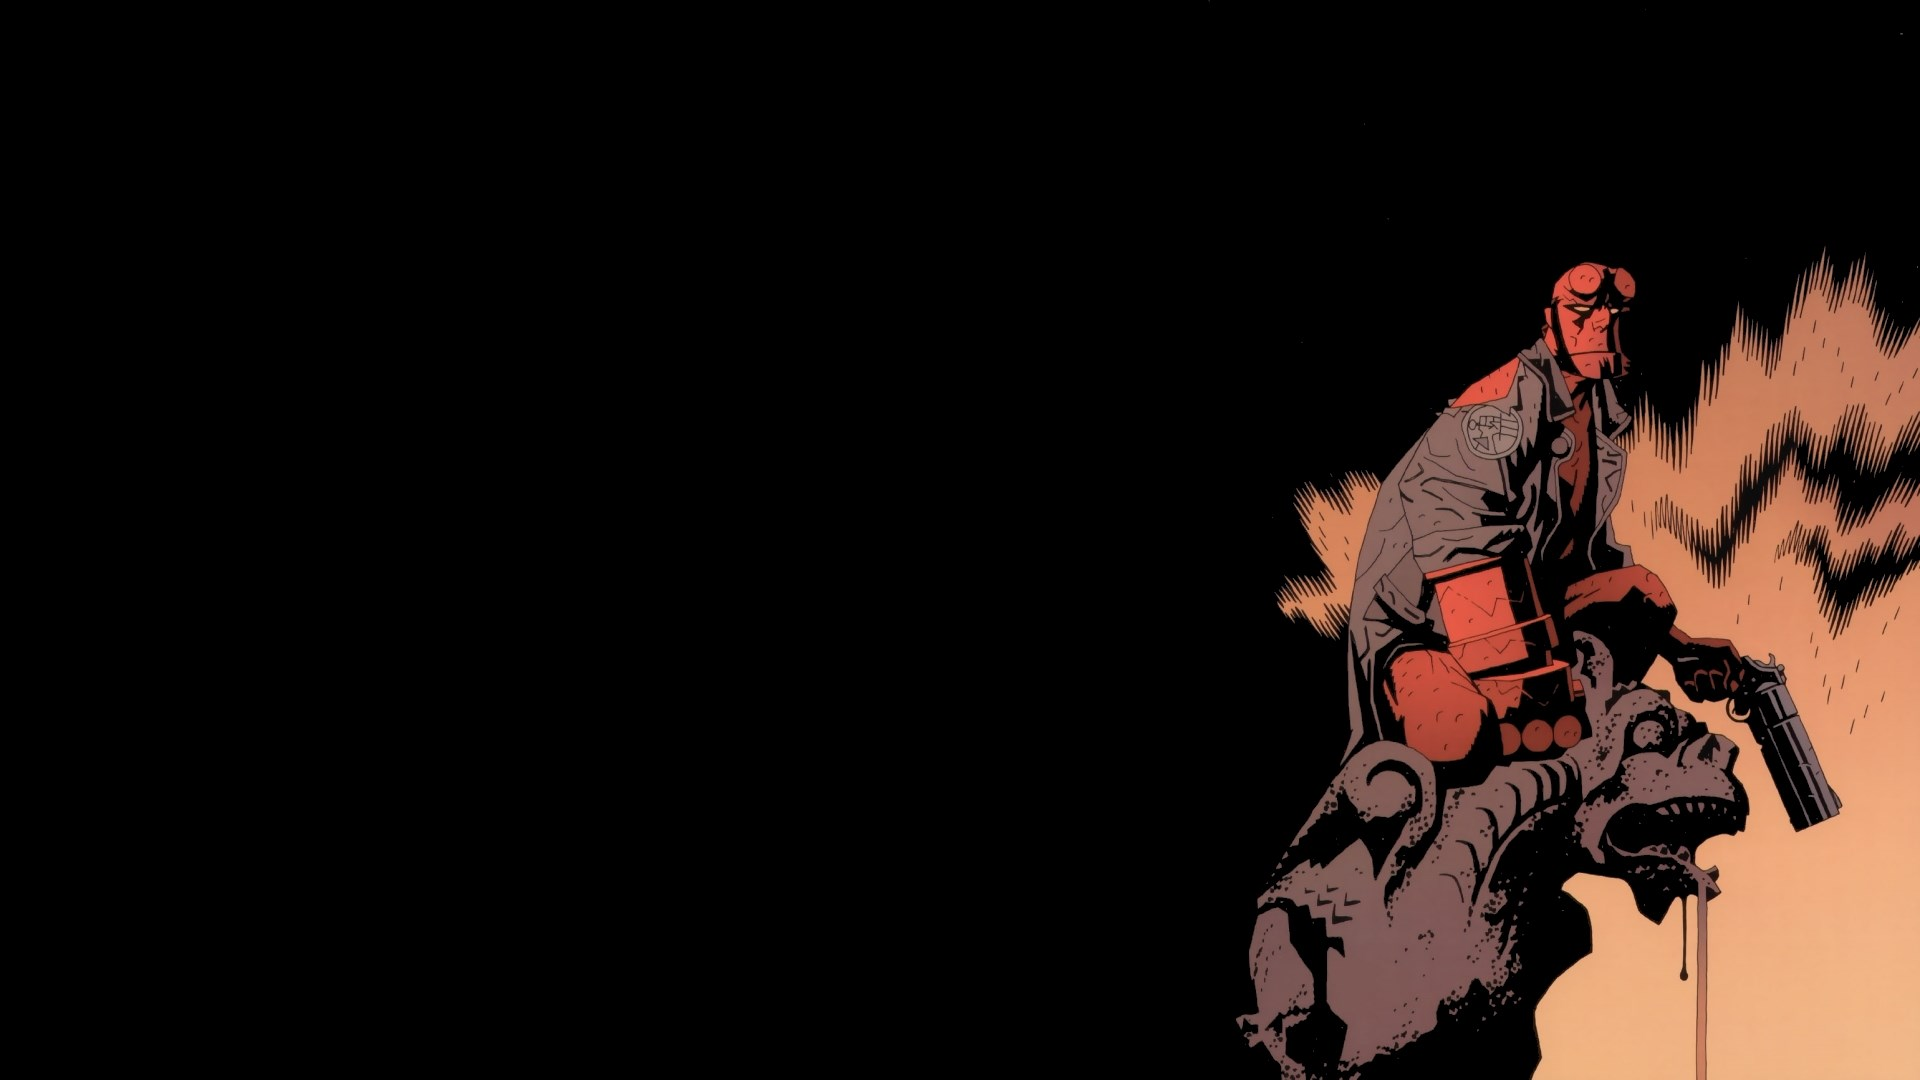 1920x1080-px-HQ-Definition-Desktop-hellboy-pic-by-Chadrick-Smith-for-pocketfullofgrace-c-wallpaper-wp340895